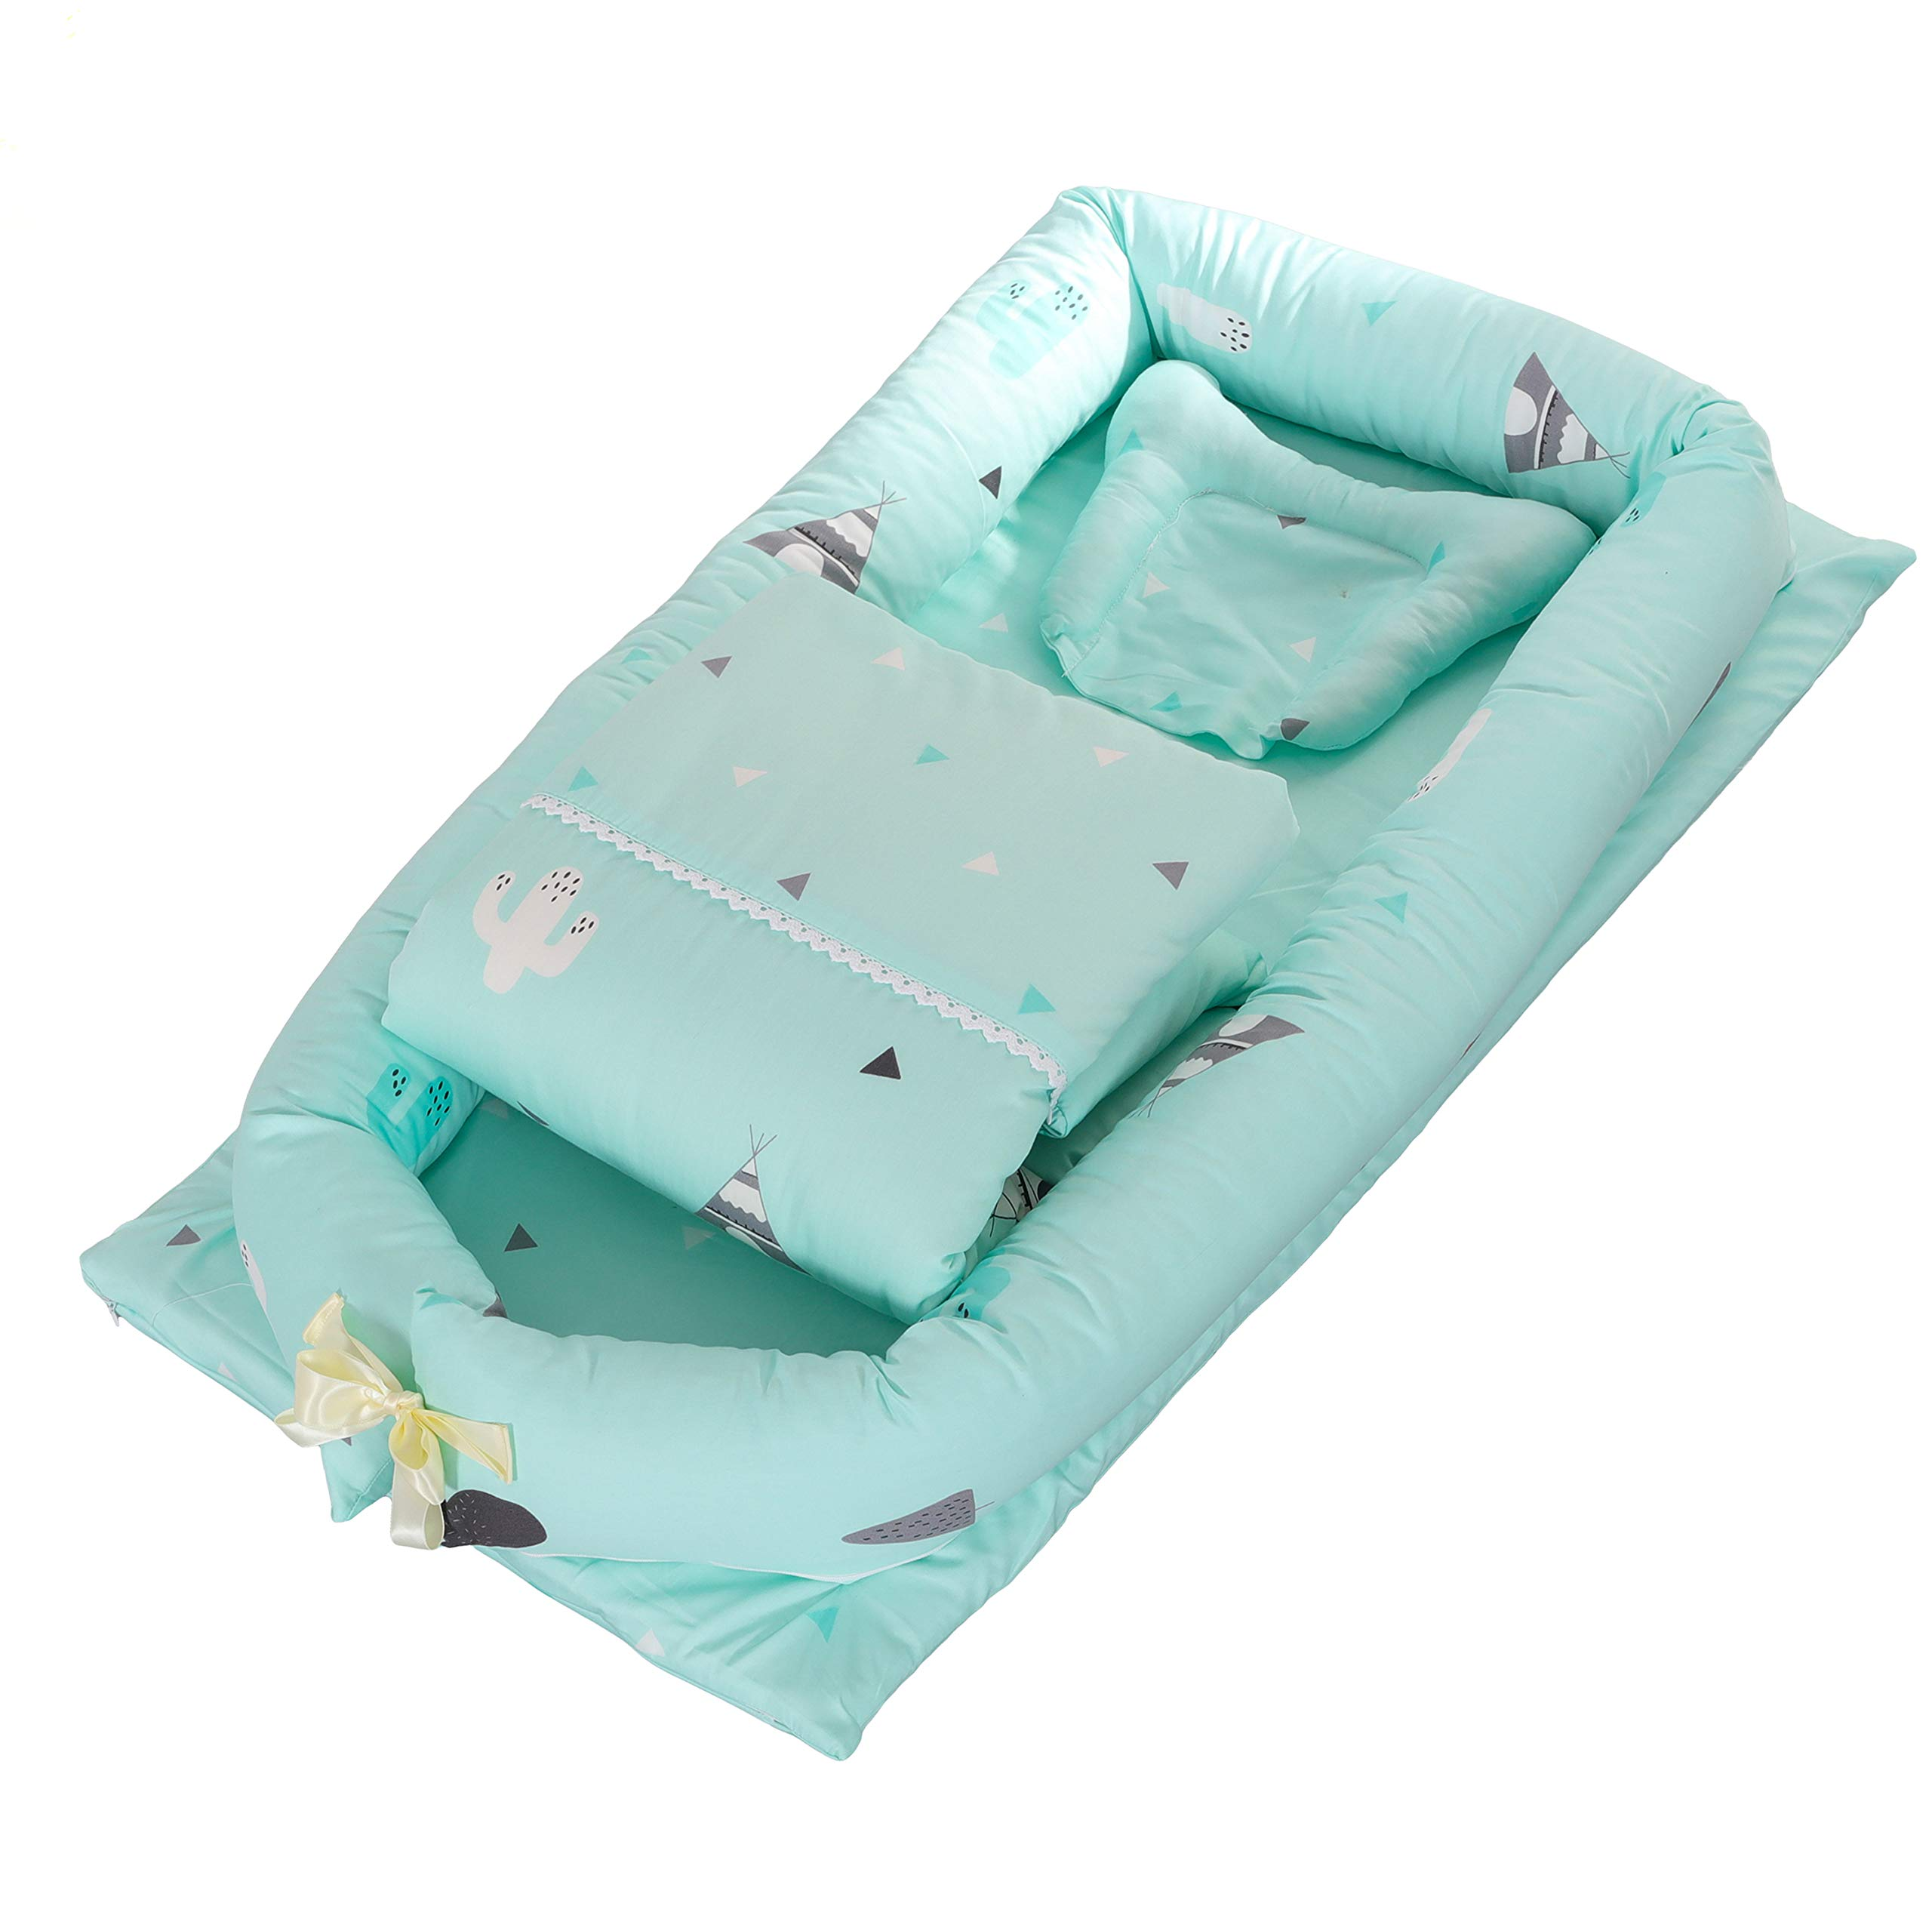 DOLDOA Baby Bassinet for Bed Portable Baby Lounger for Newborn,100% Cotton Newborn Portable Crib,Breathable and Hypoallergenic Sleep Nest Newborn Lounger Pillow for Bedroom/Travel (Cactus - Green)